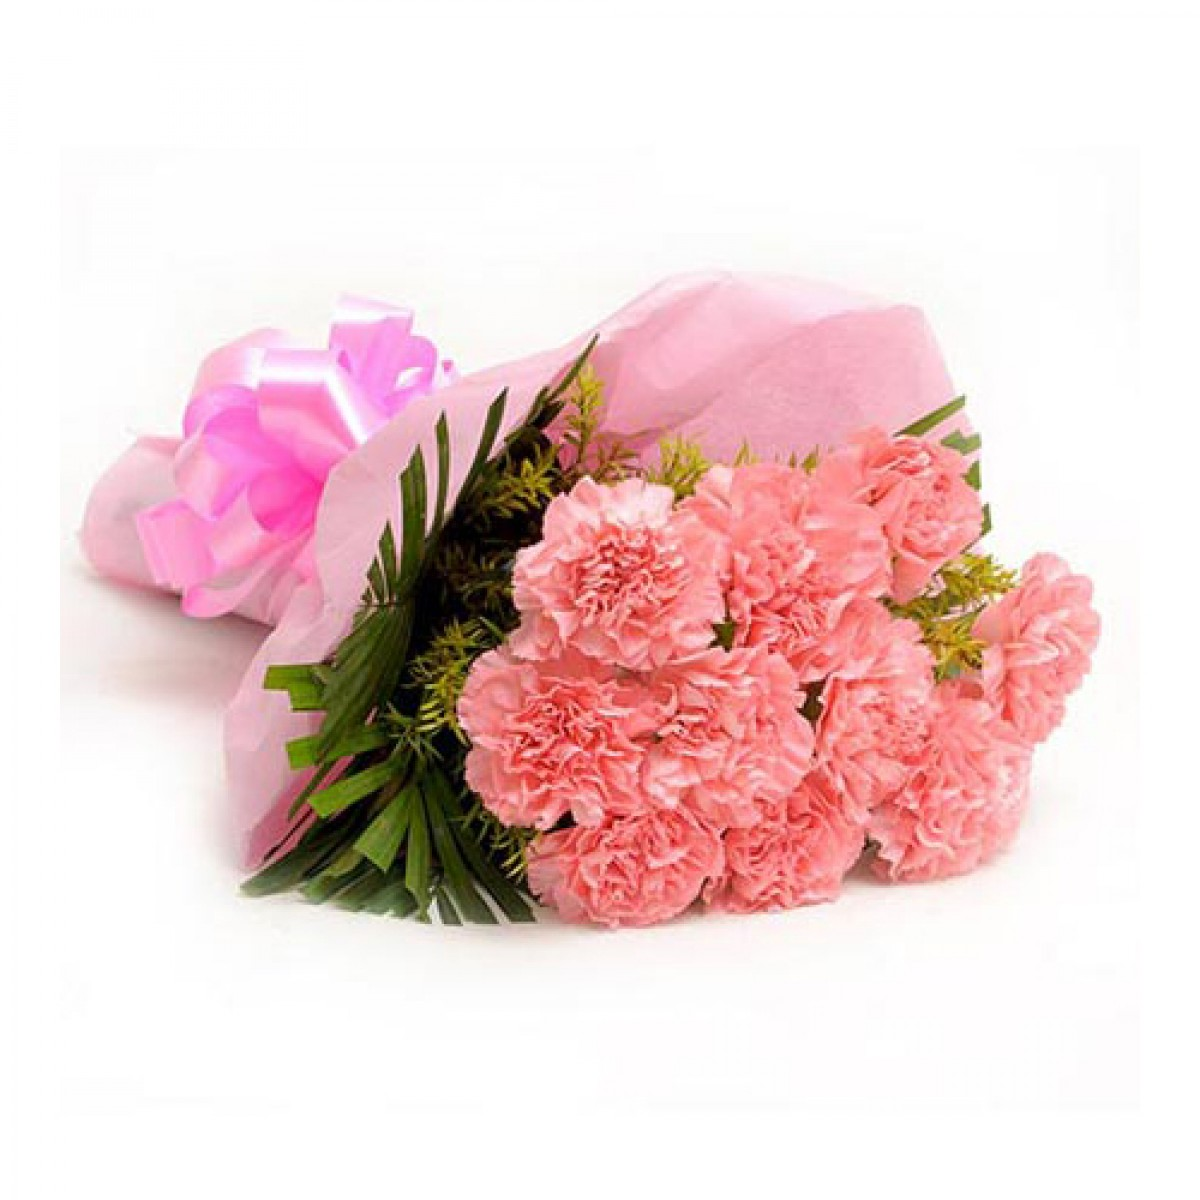 Carnation Flower Gift Pink Carnation Bouquet | Buy Gifts Online